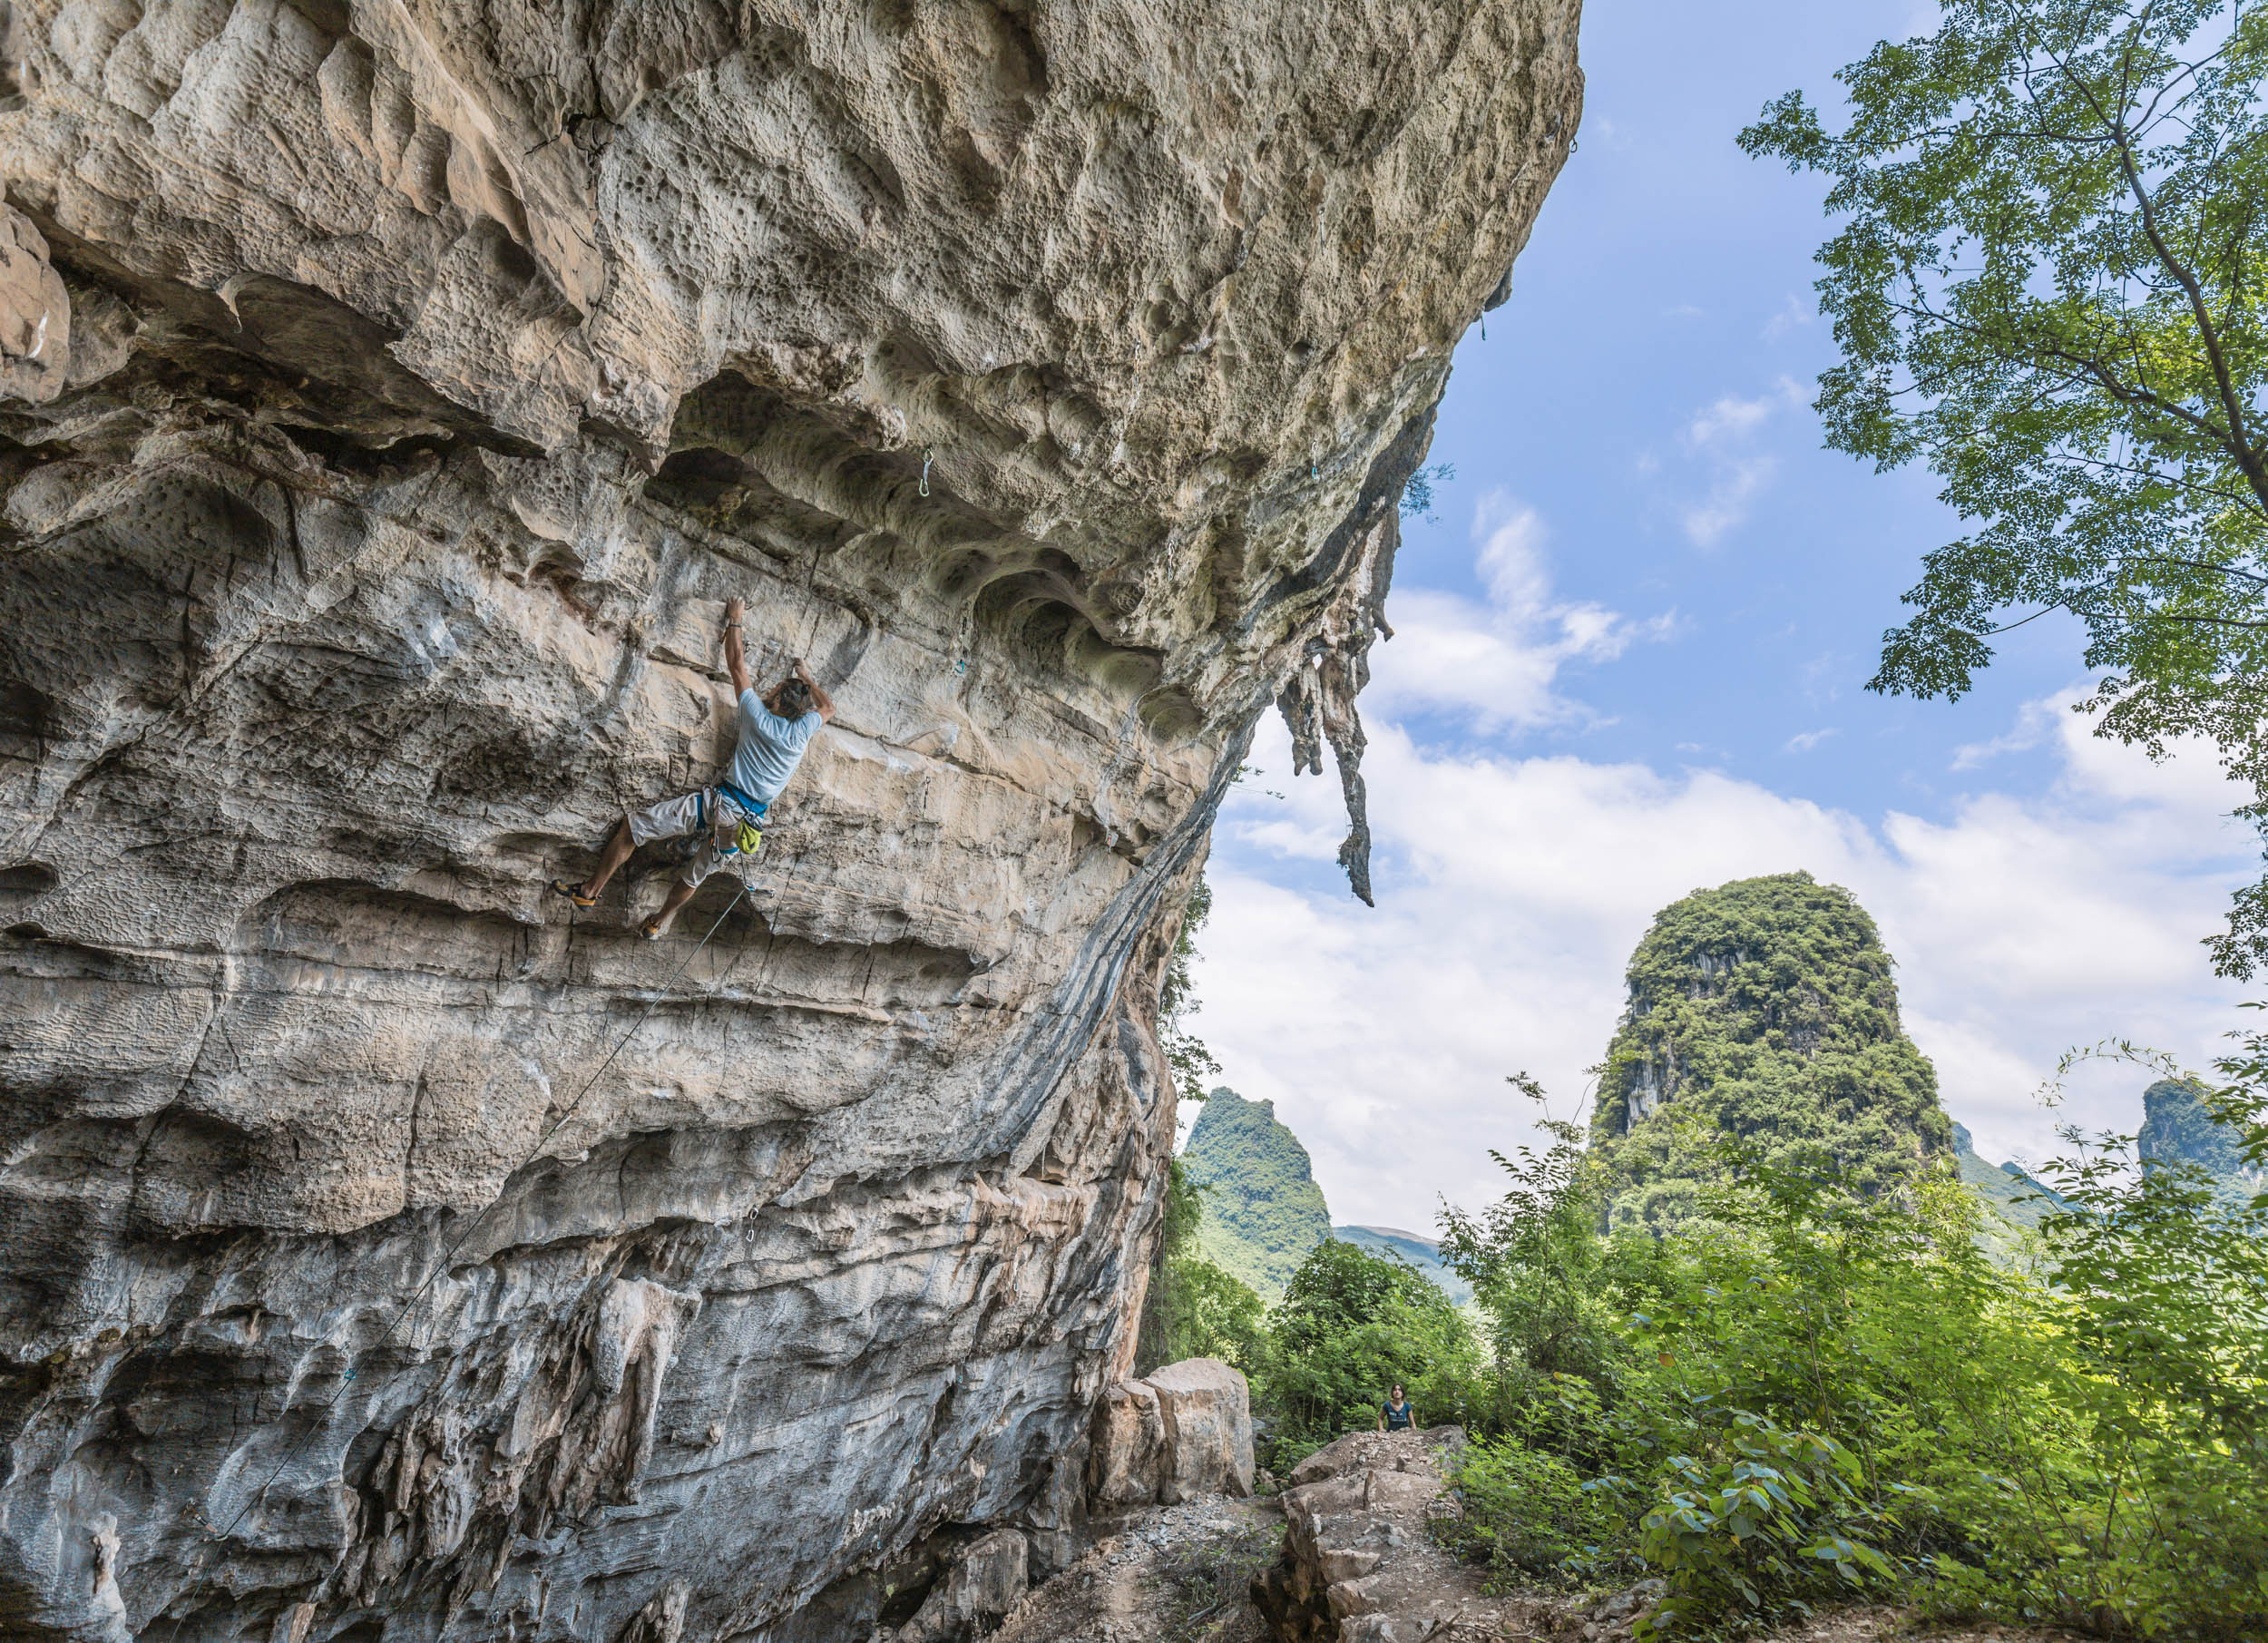 Miguel climbing his project, 5.14d, in Area 515, Yangshuo